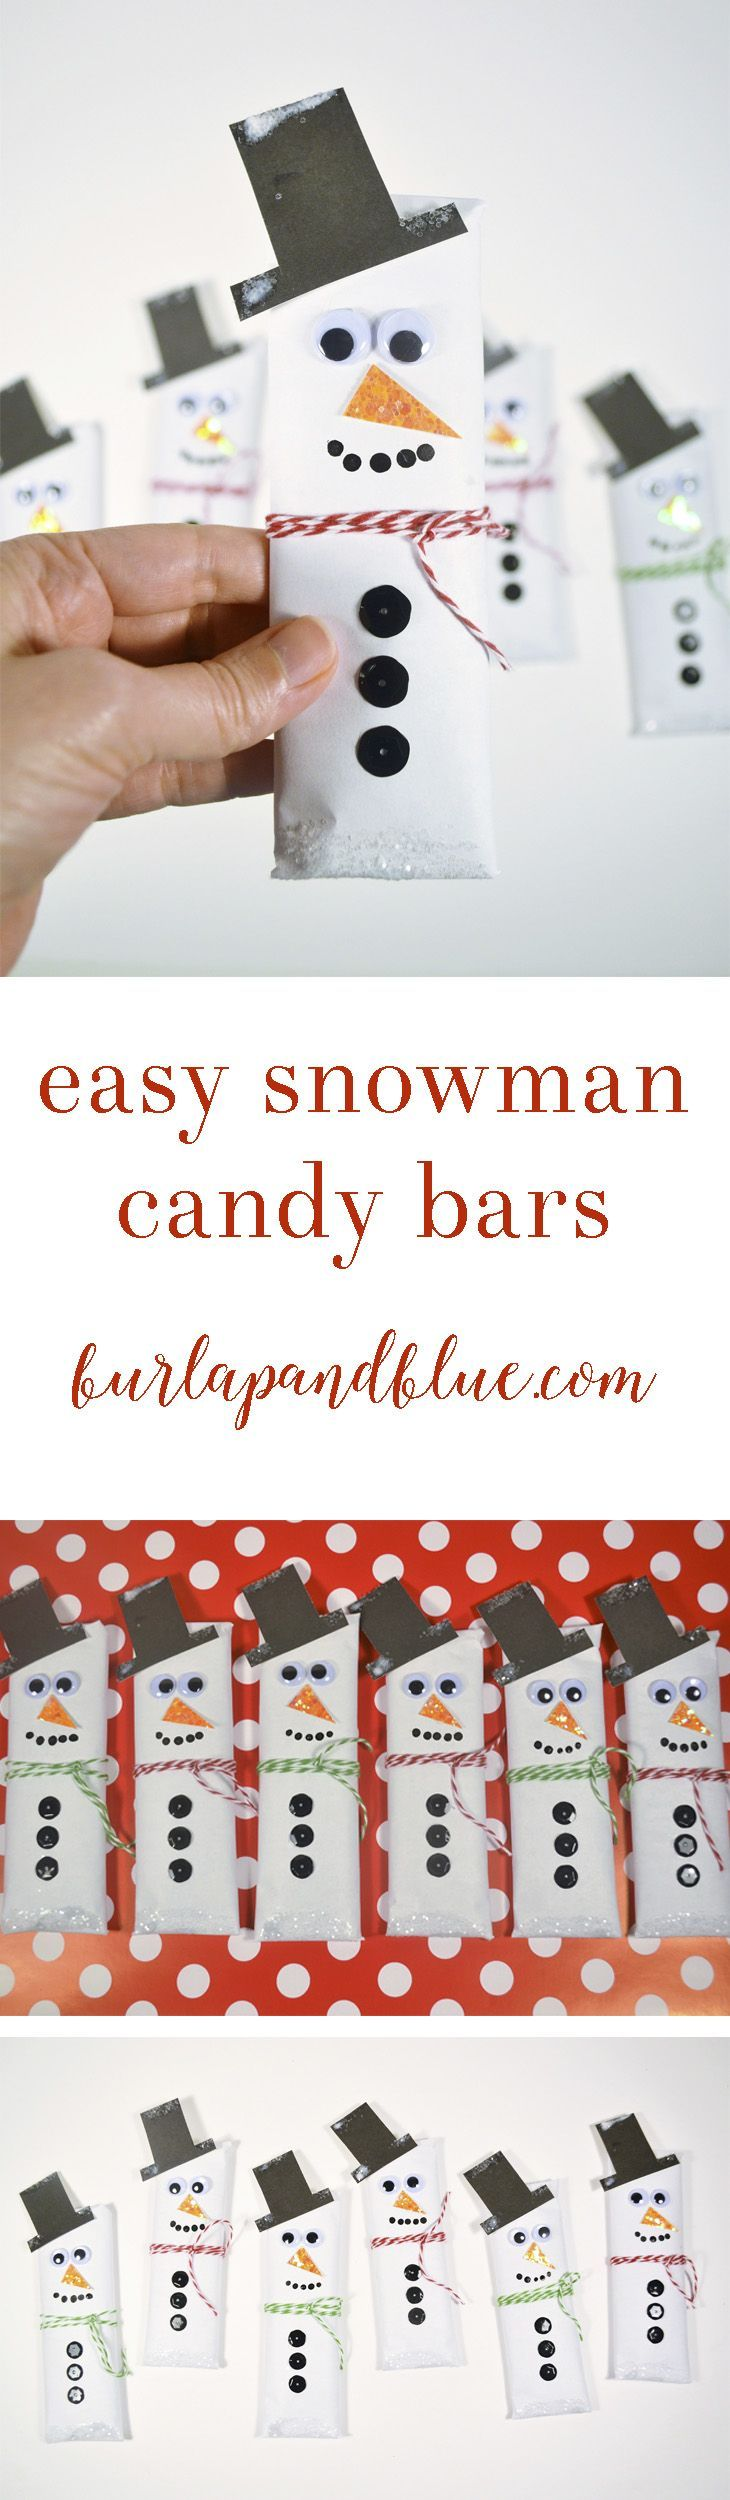 this easy snowman craft is perfect for kids! make these snowman candy bars to give out as gifts or favors for the christmas  holidays (also make a fun stocking stuffer).